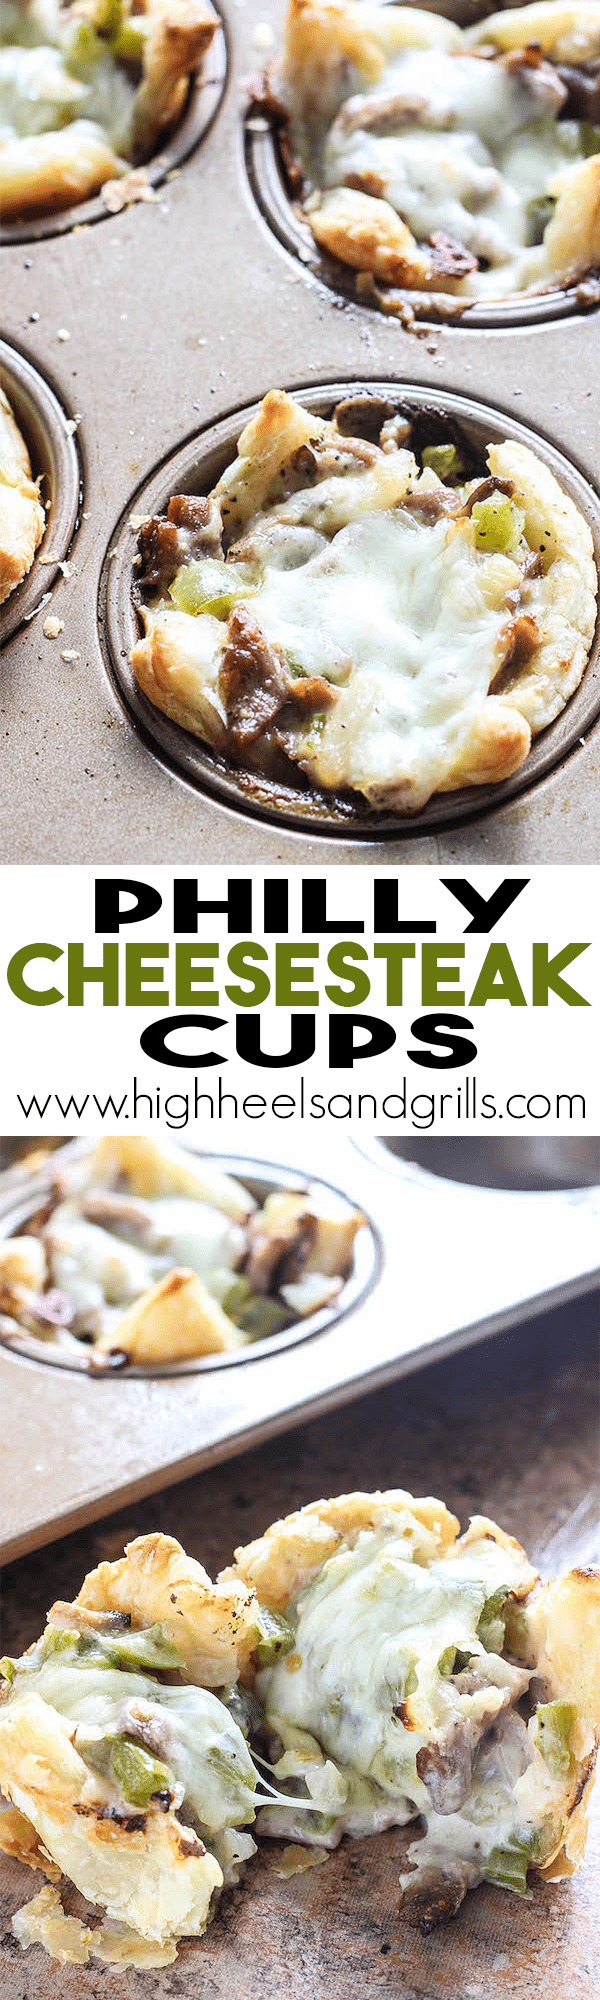 Easy healthy philly cheese steak recipe